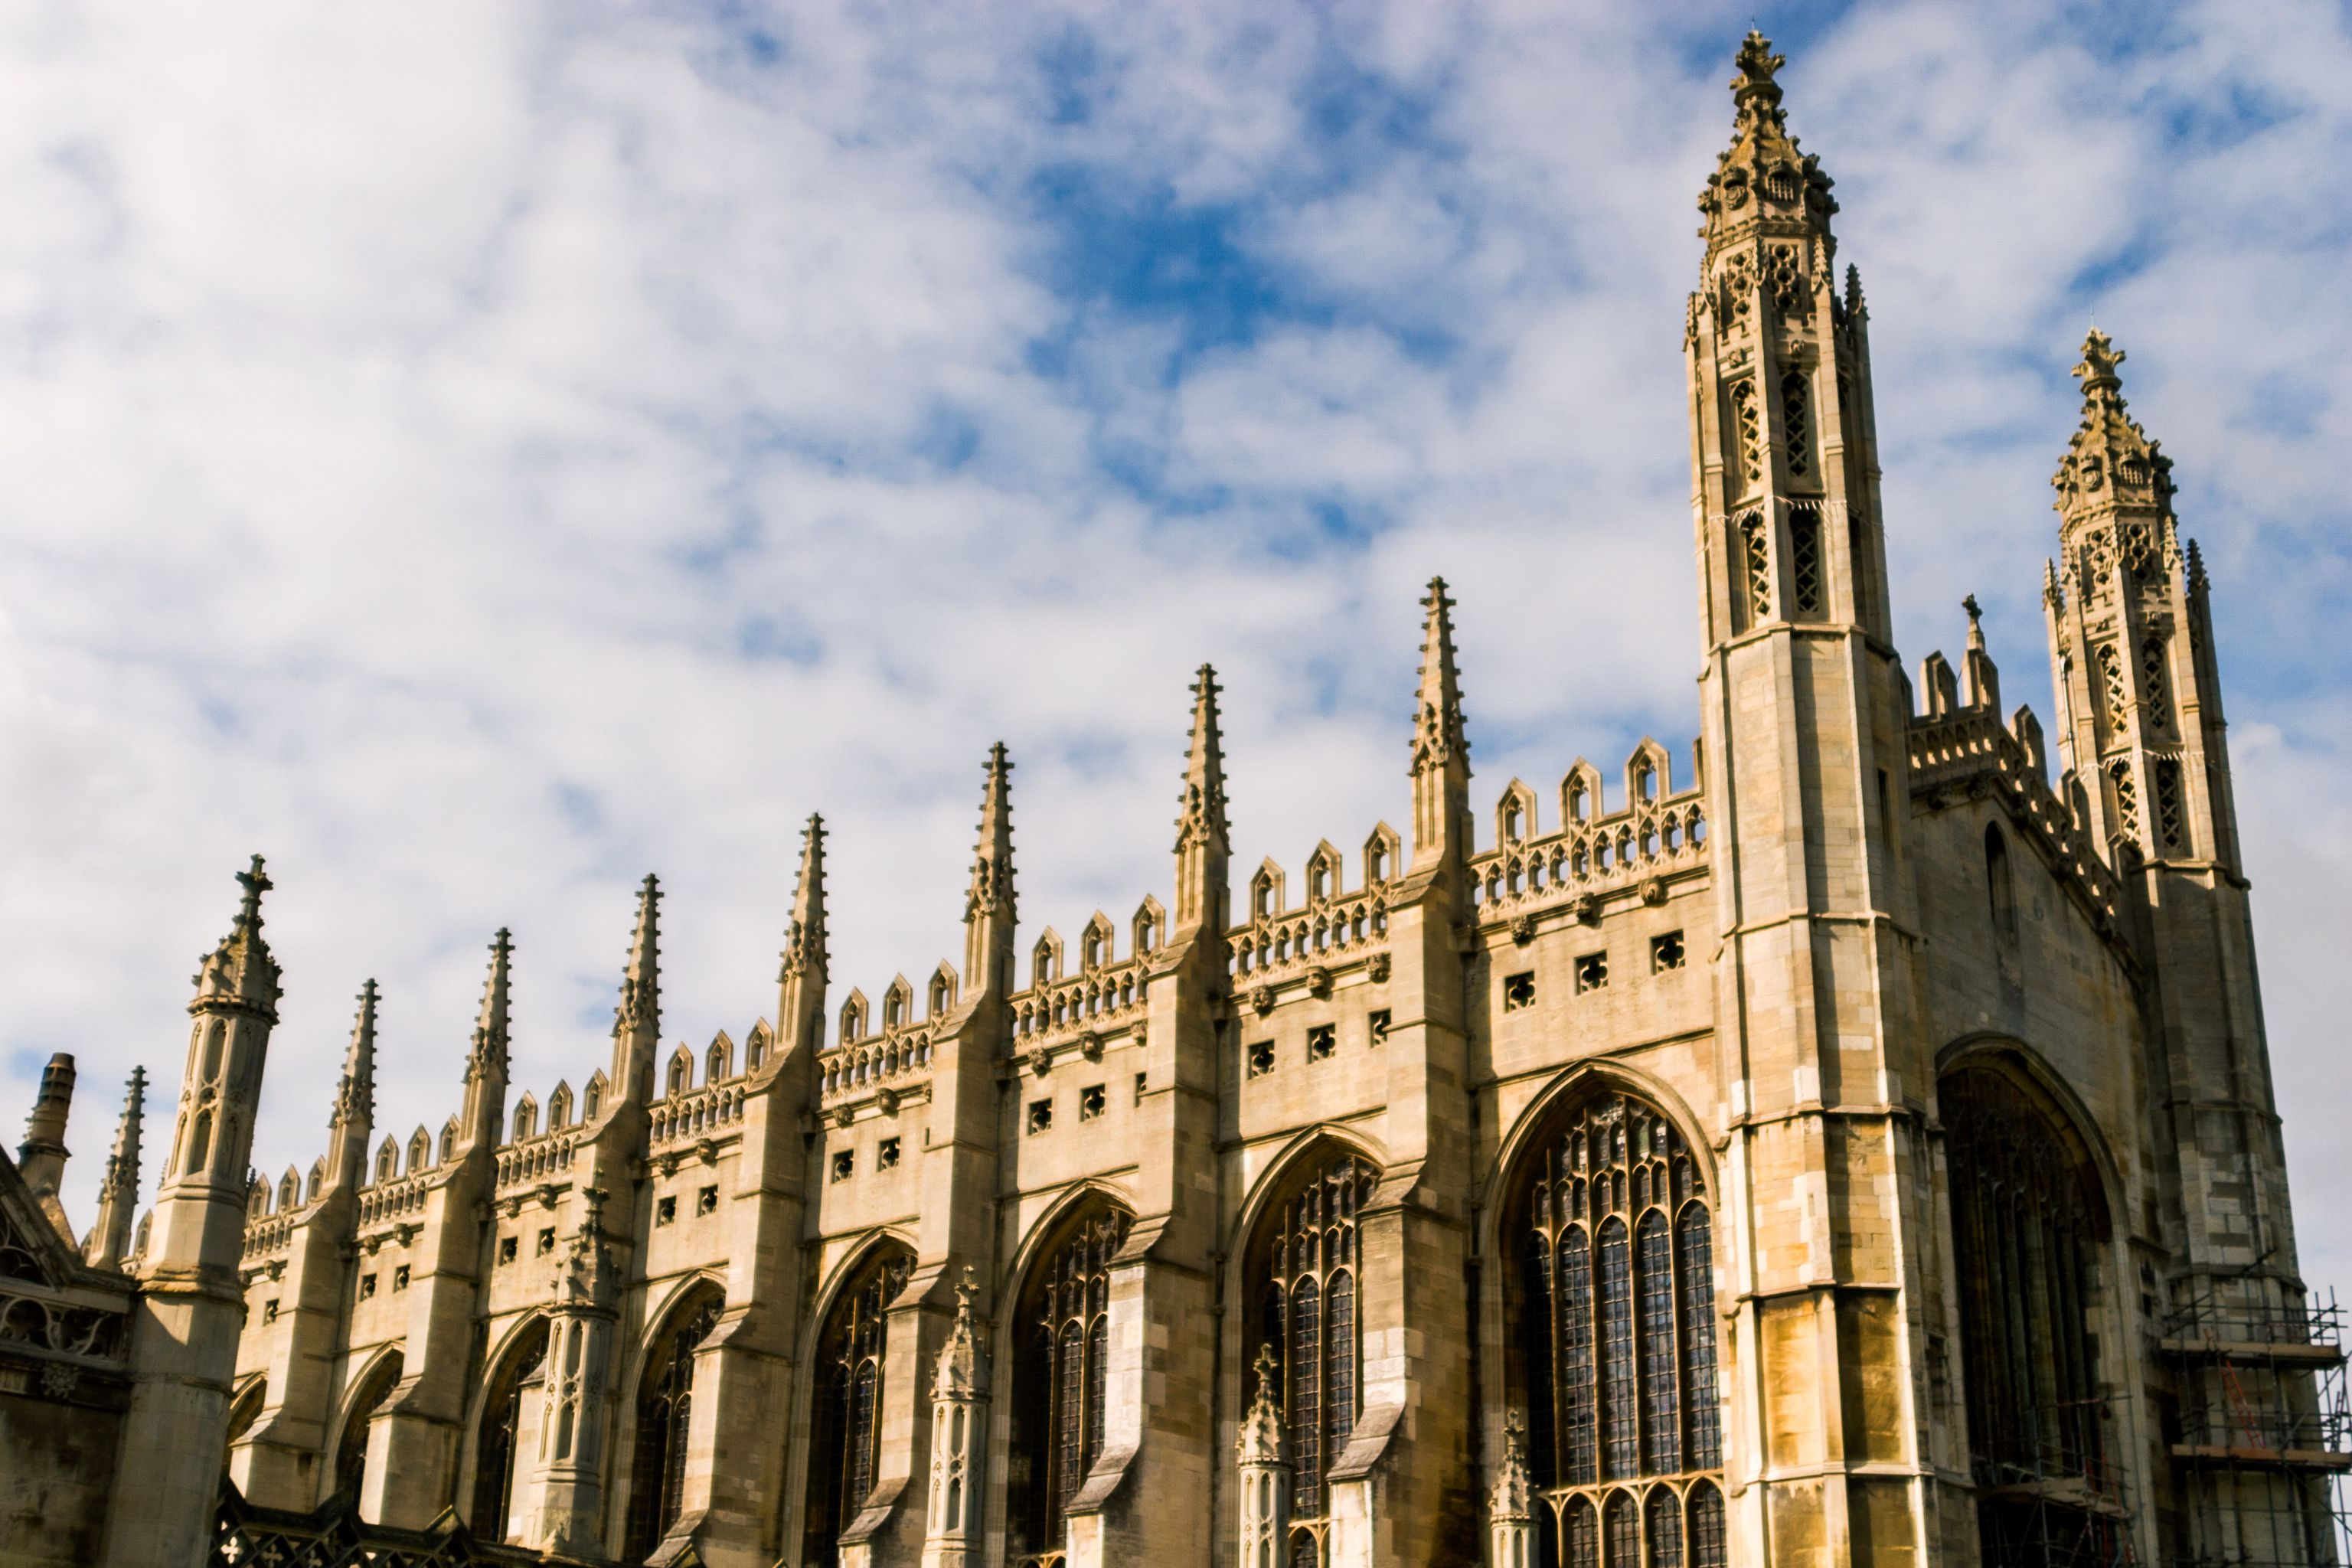 Dramatic wide angle of the outside of Kings College building in Cambridge